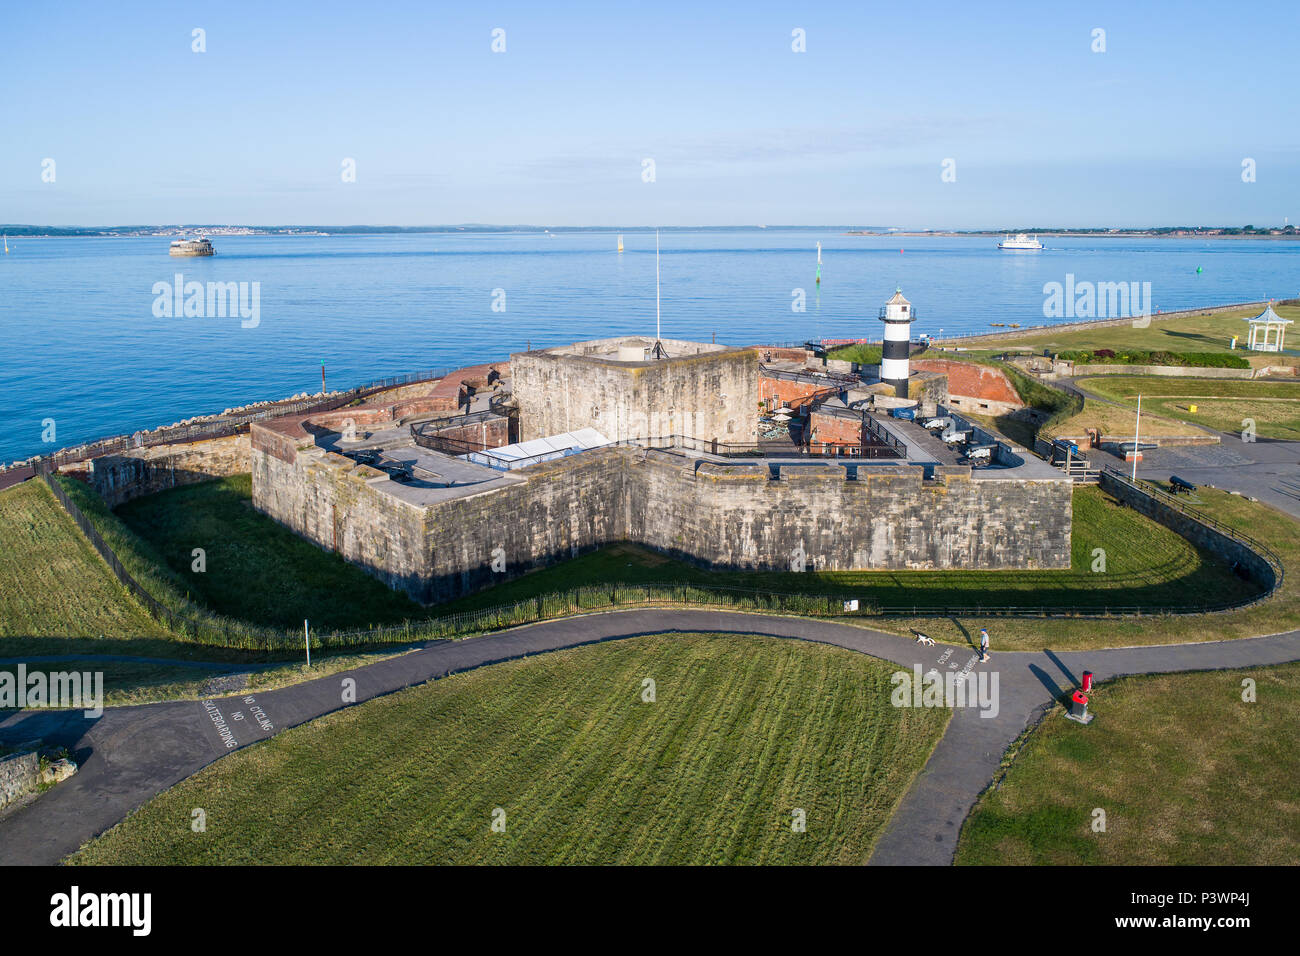 Southsea Castle, Pier and Seafront. - Stock Image